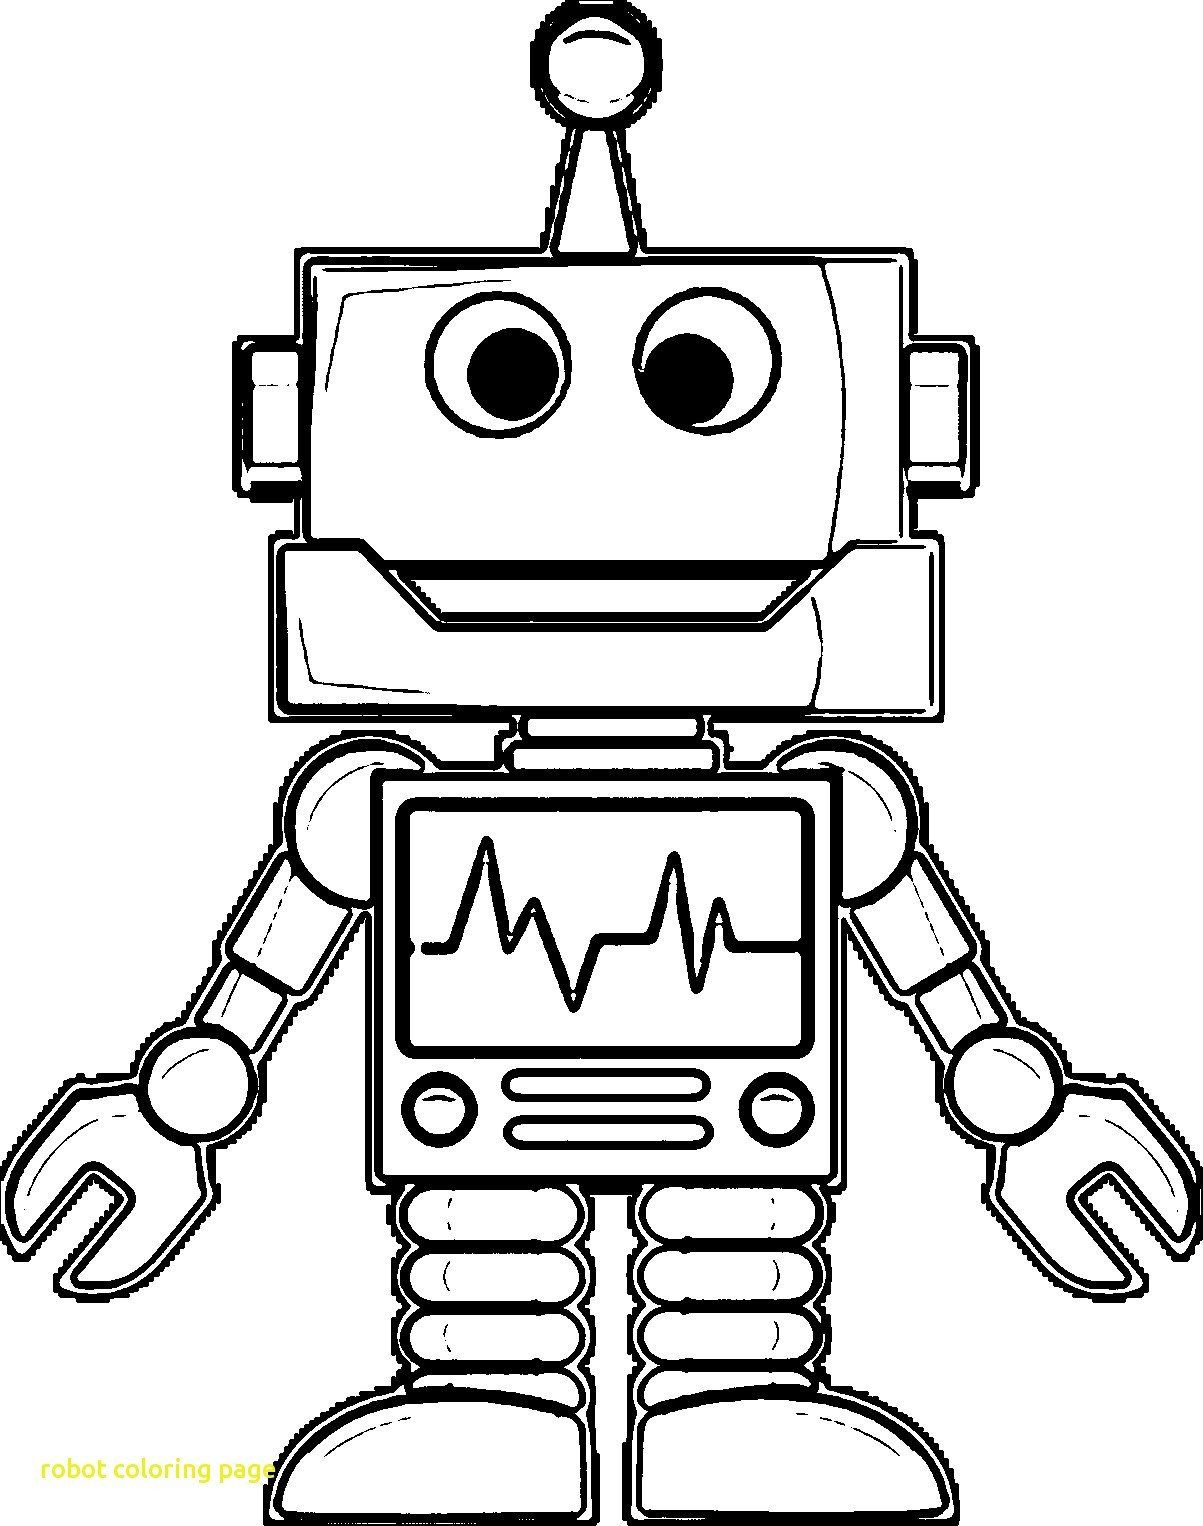 Cute Robot Coloring Pages Robot Coloring Pages To Print Lustige Malvorlagen Malvorlagen Fur Kinder Kinder Zeichnen